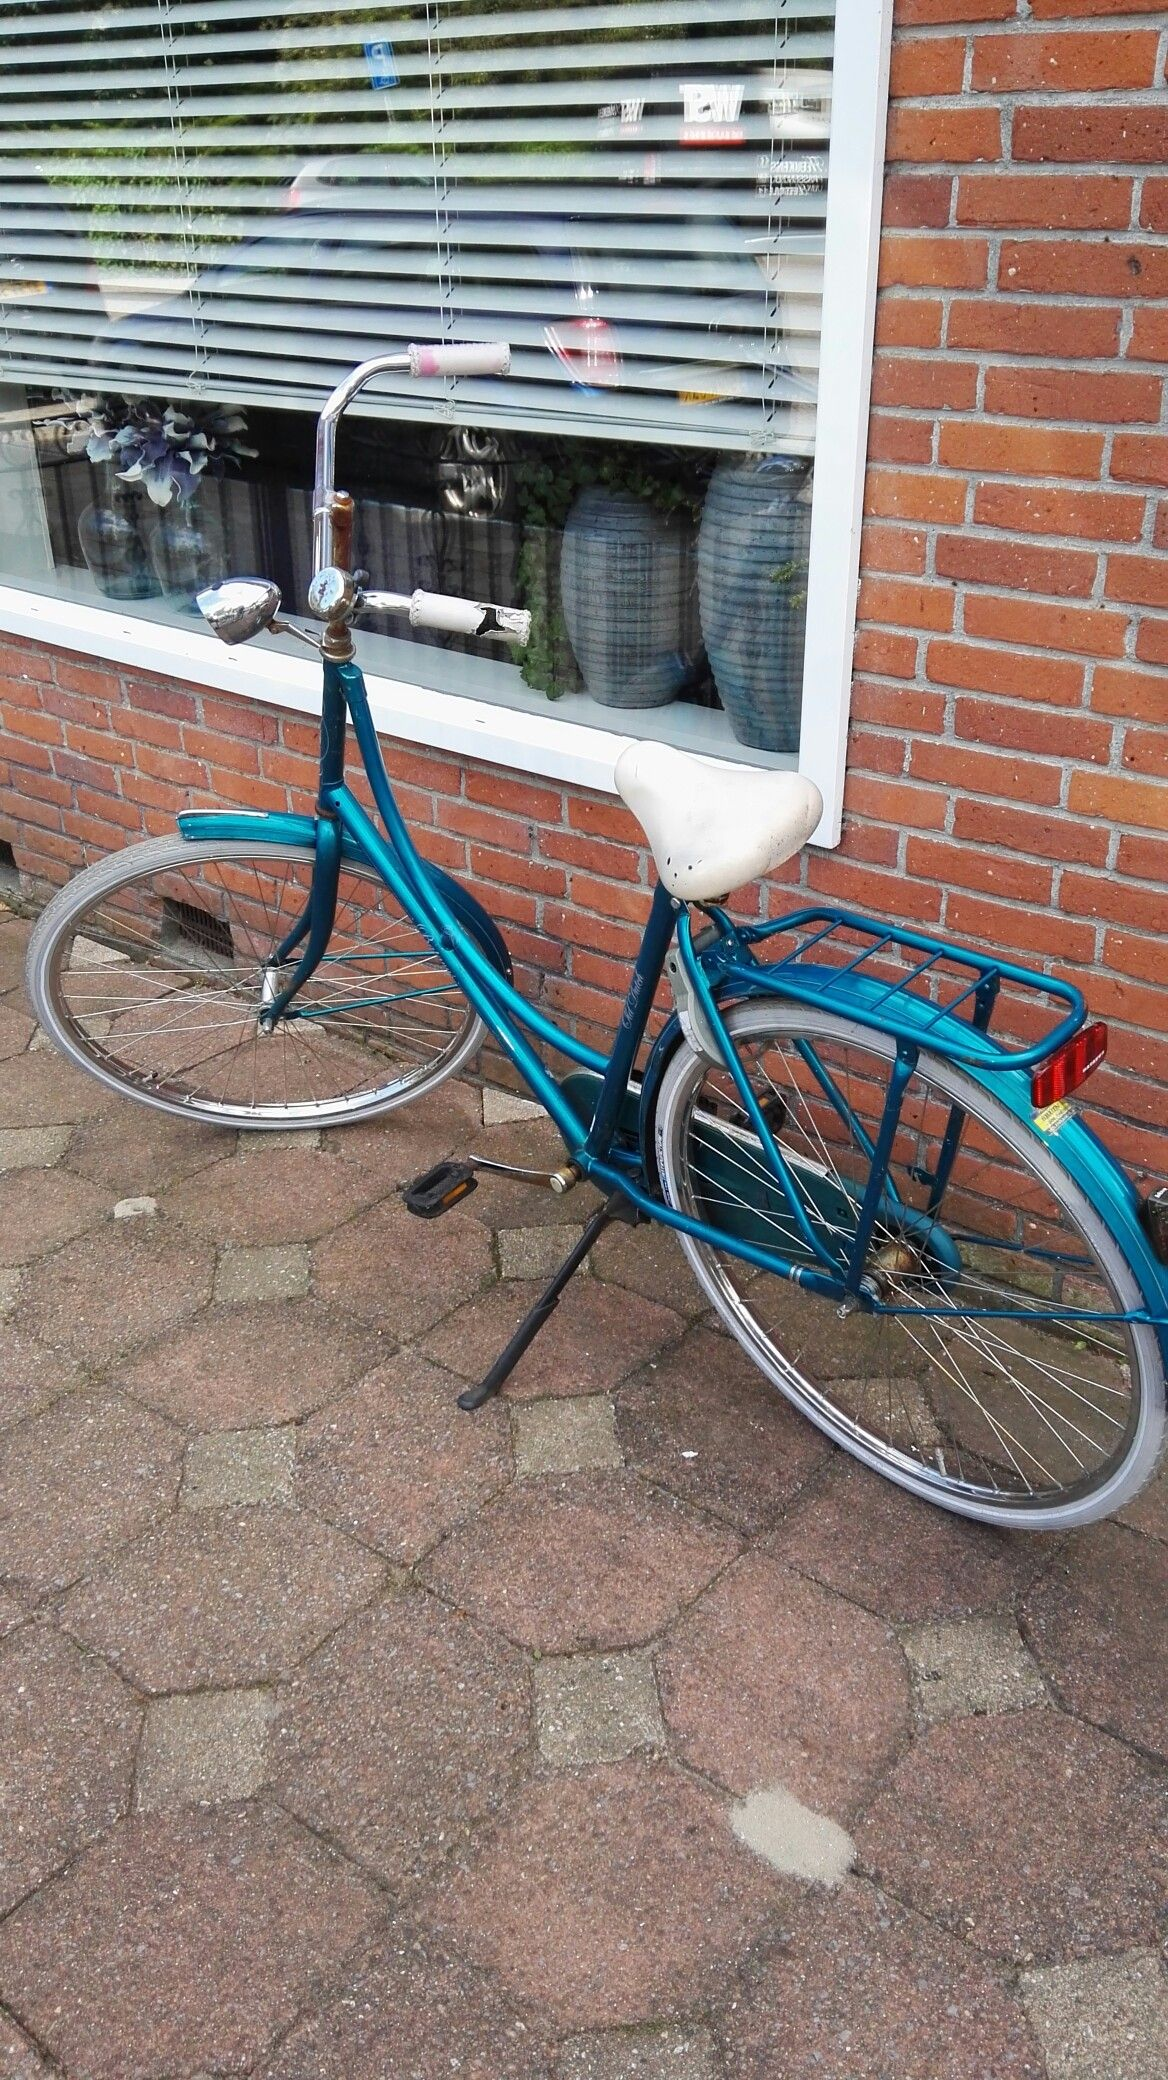 Site Is About Dutch Bikes I Ride A Bike Every Day It S The Way